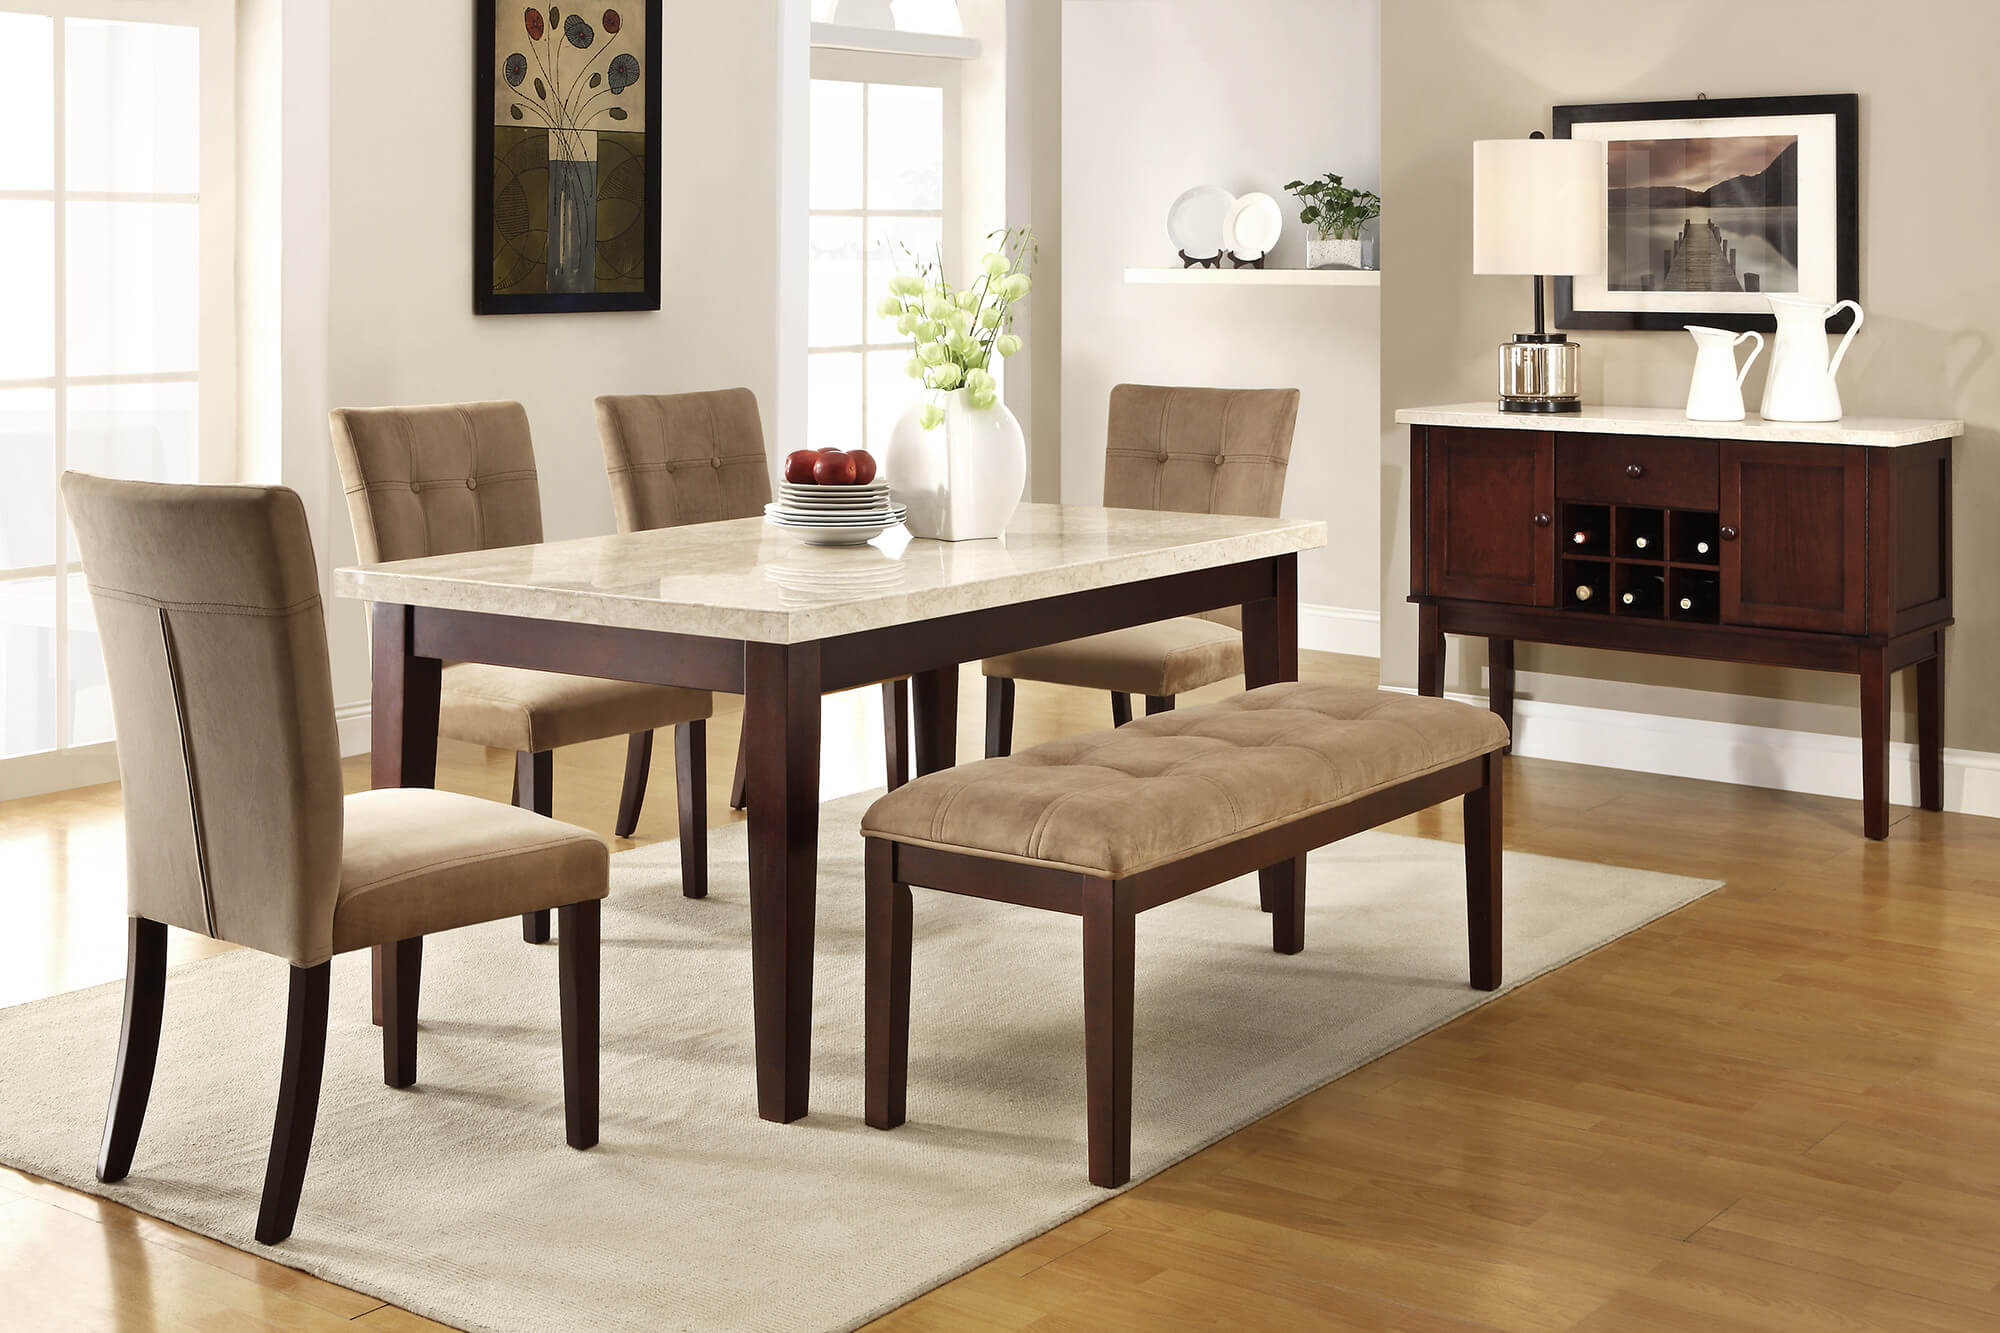 Here's a 6 piece rubberwood dining set with faux marble table top with tan upholstery for a lighter dining room color scheme.